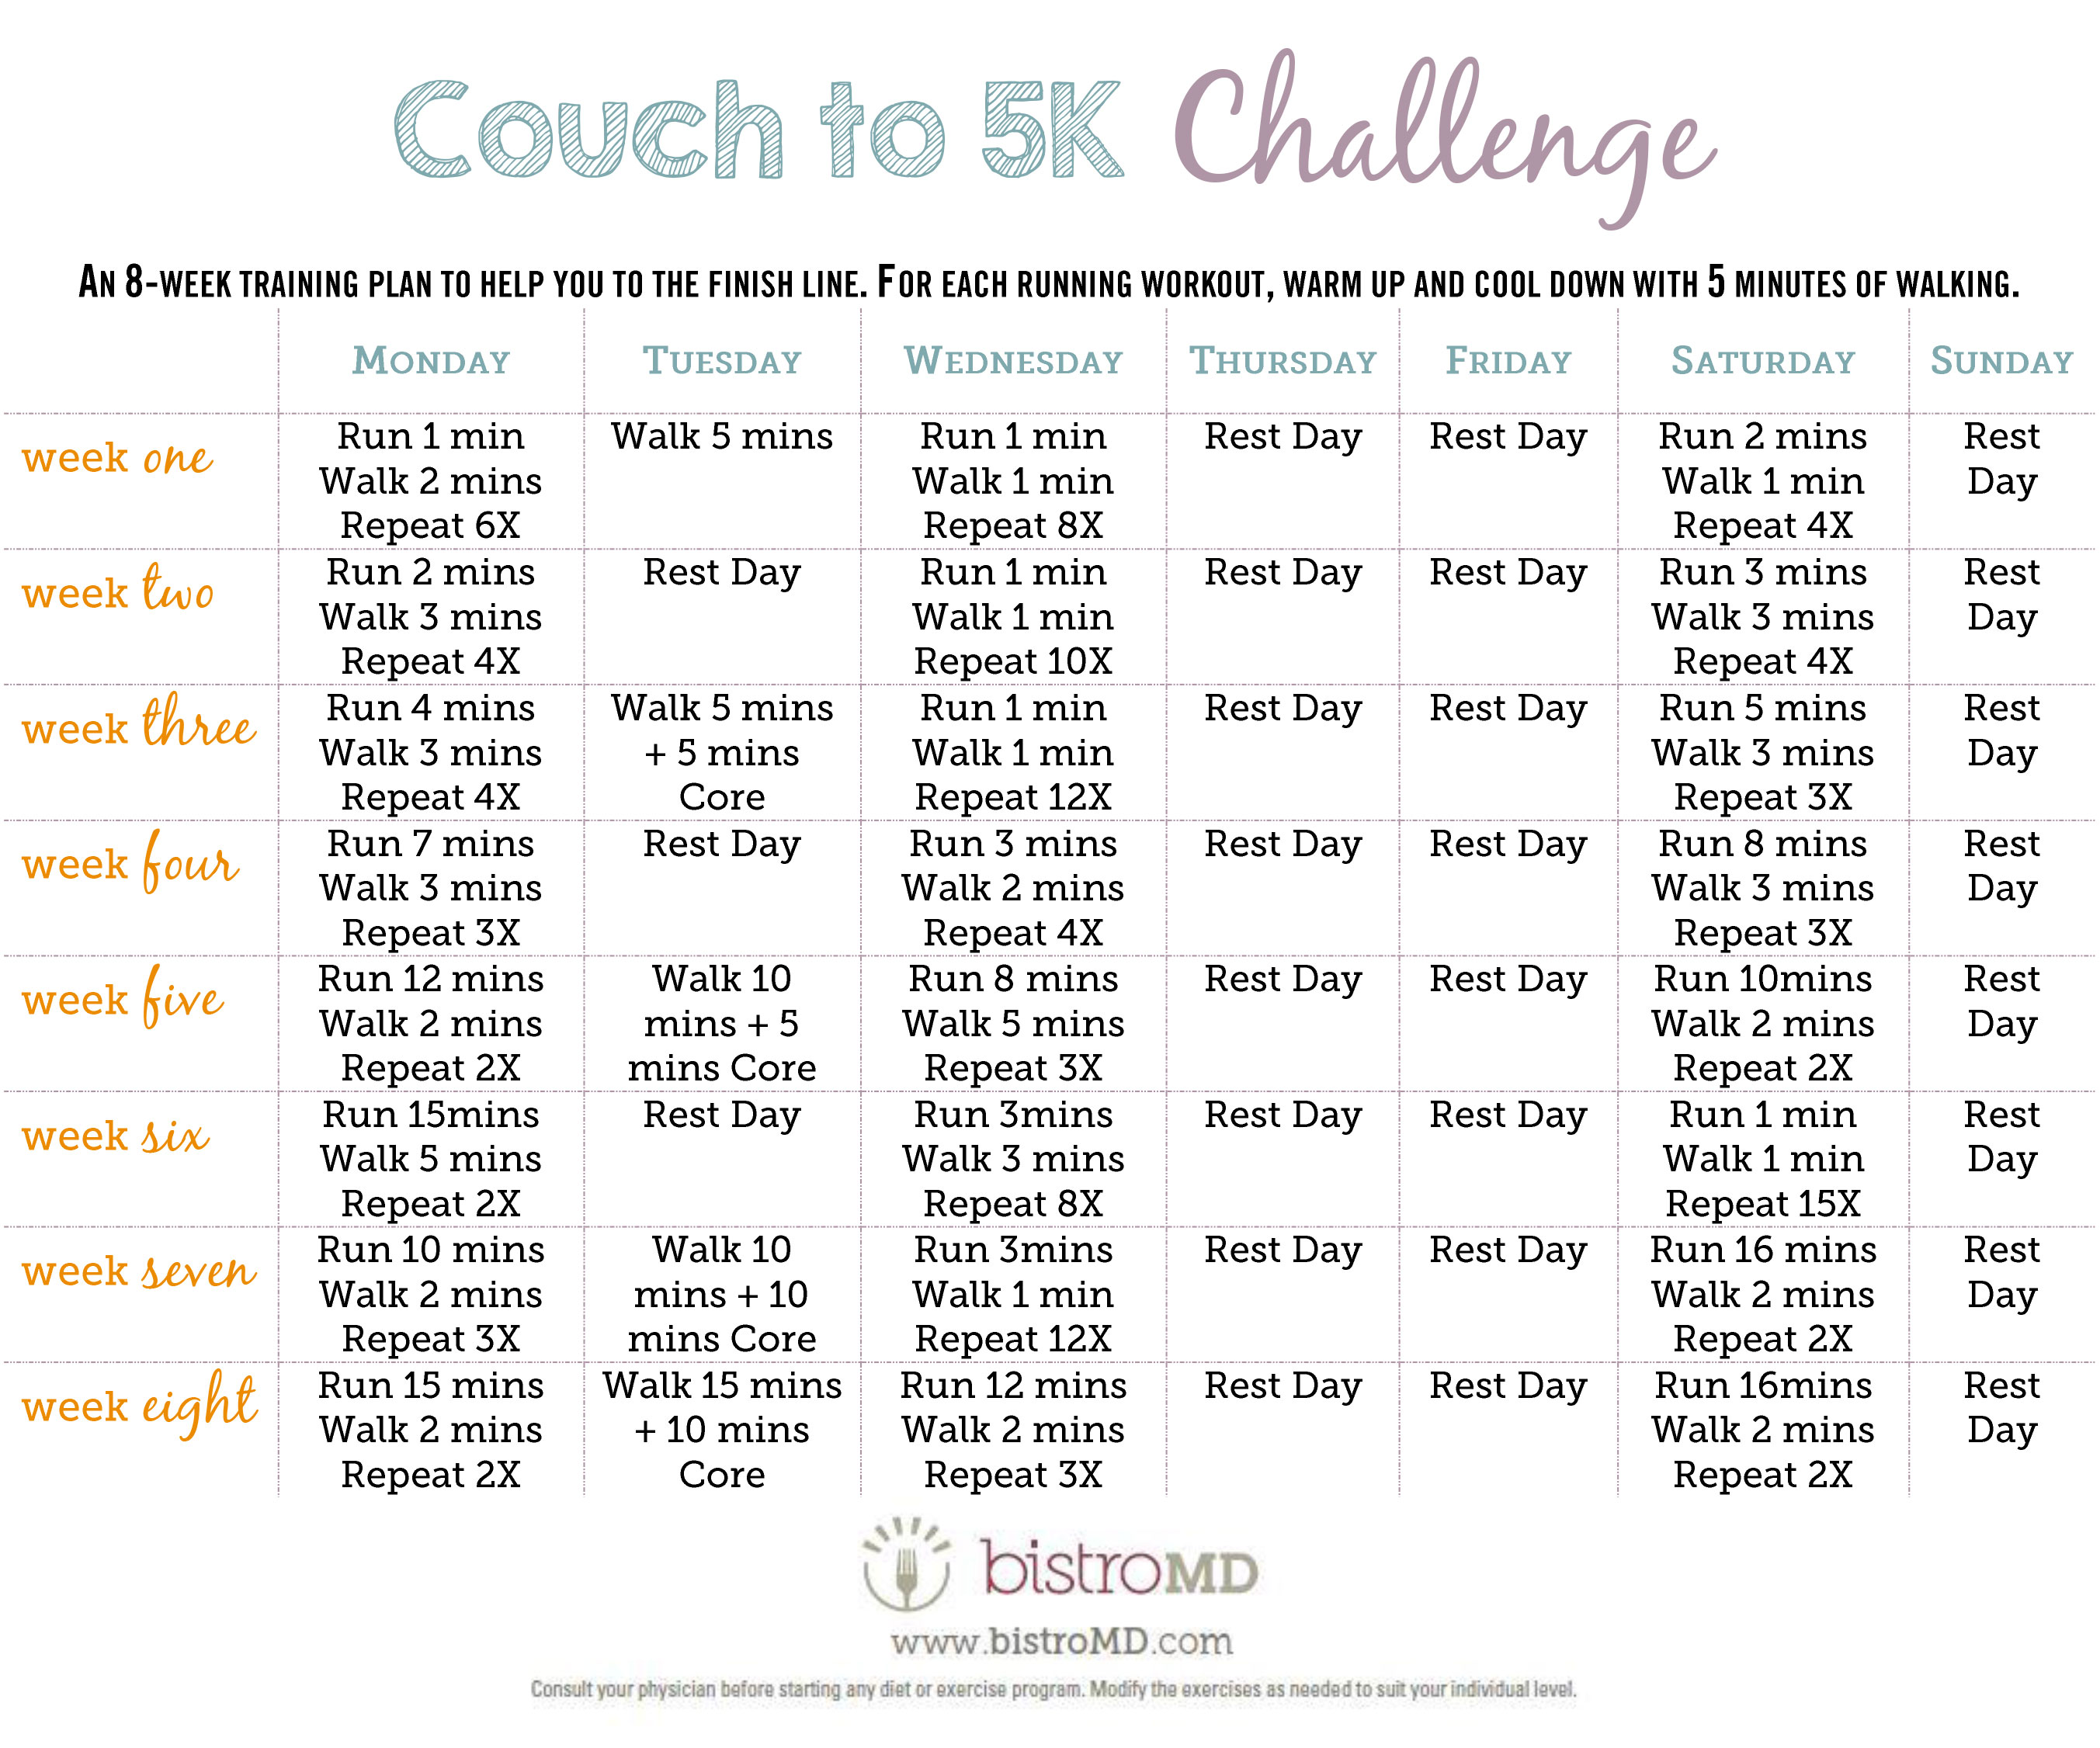 Couch to 5K Challenge by BistroMD